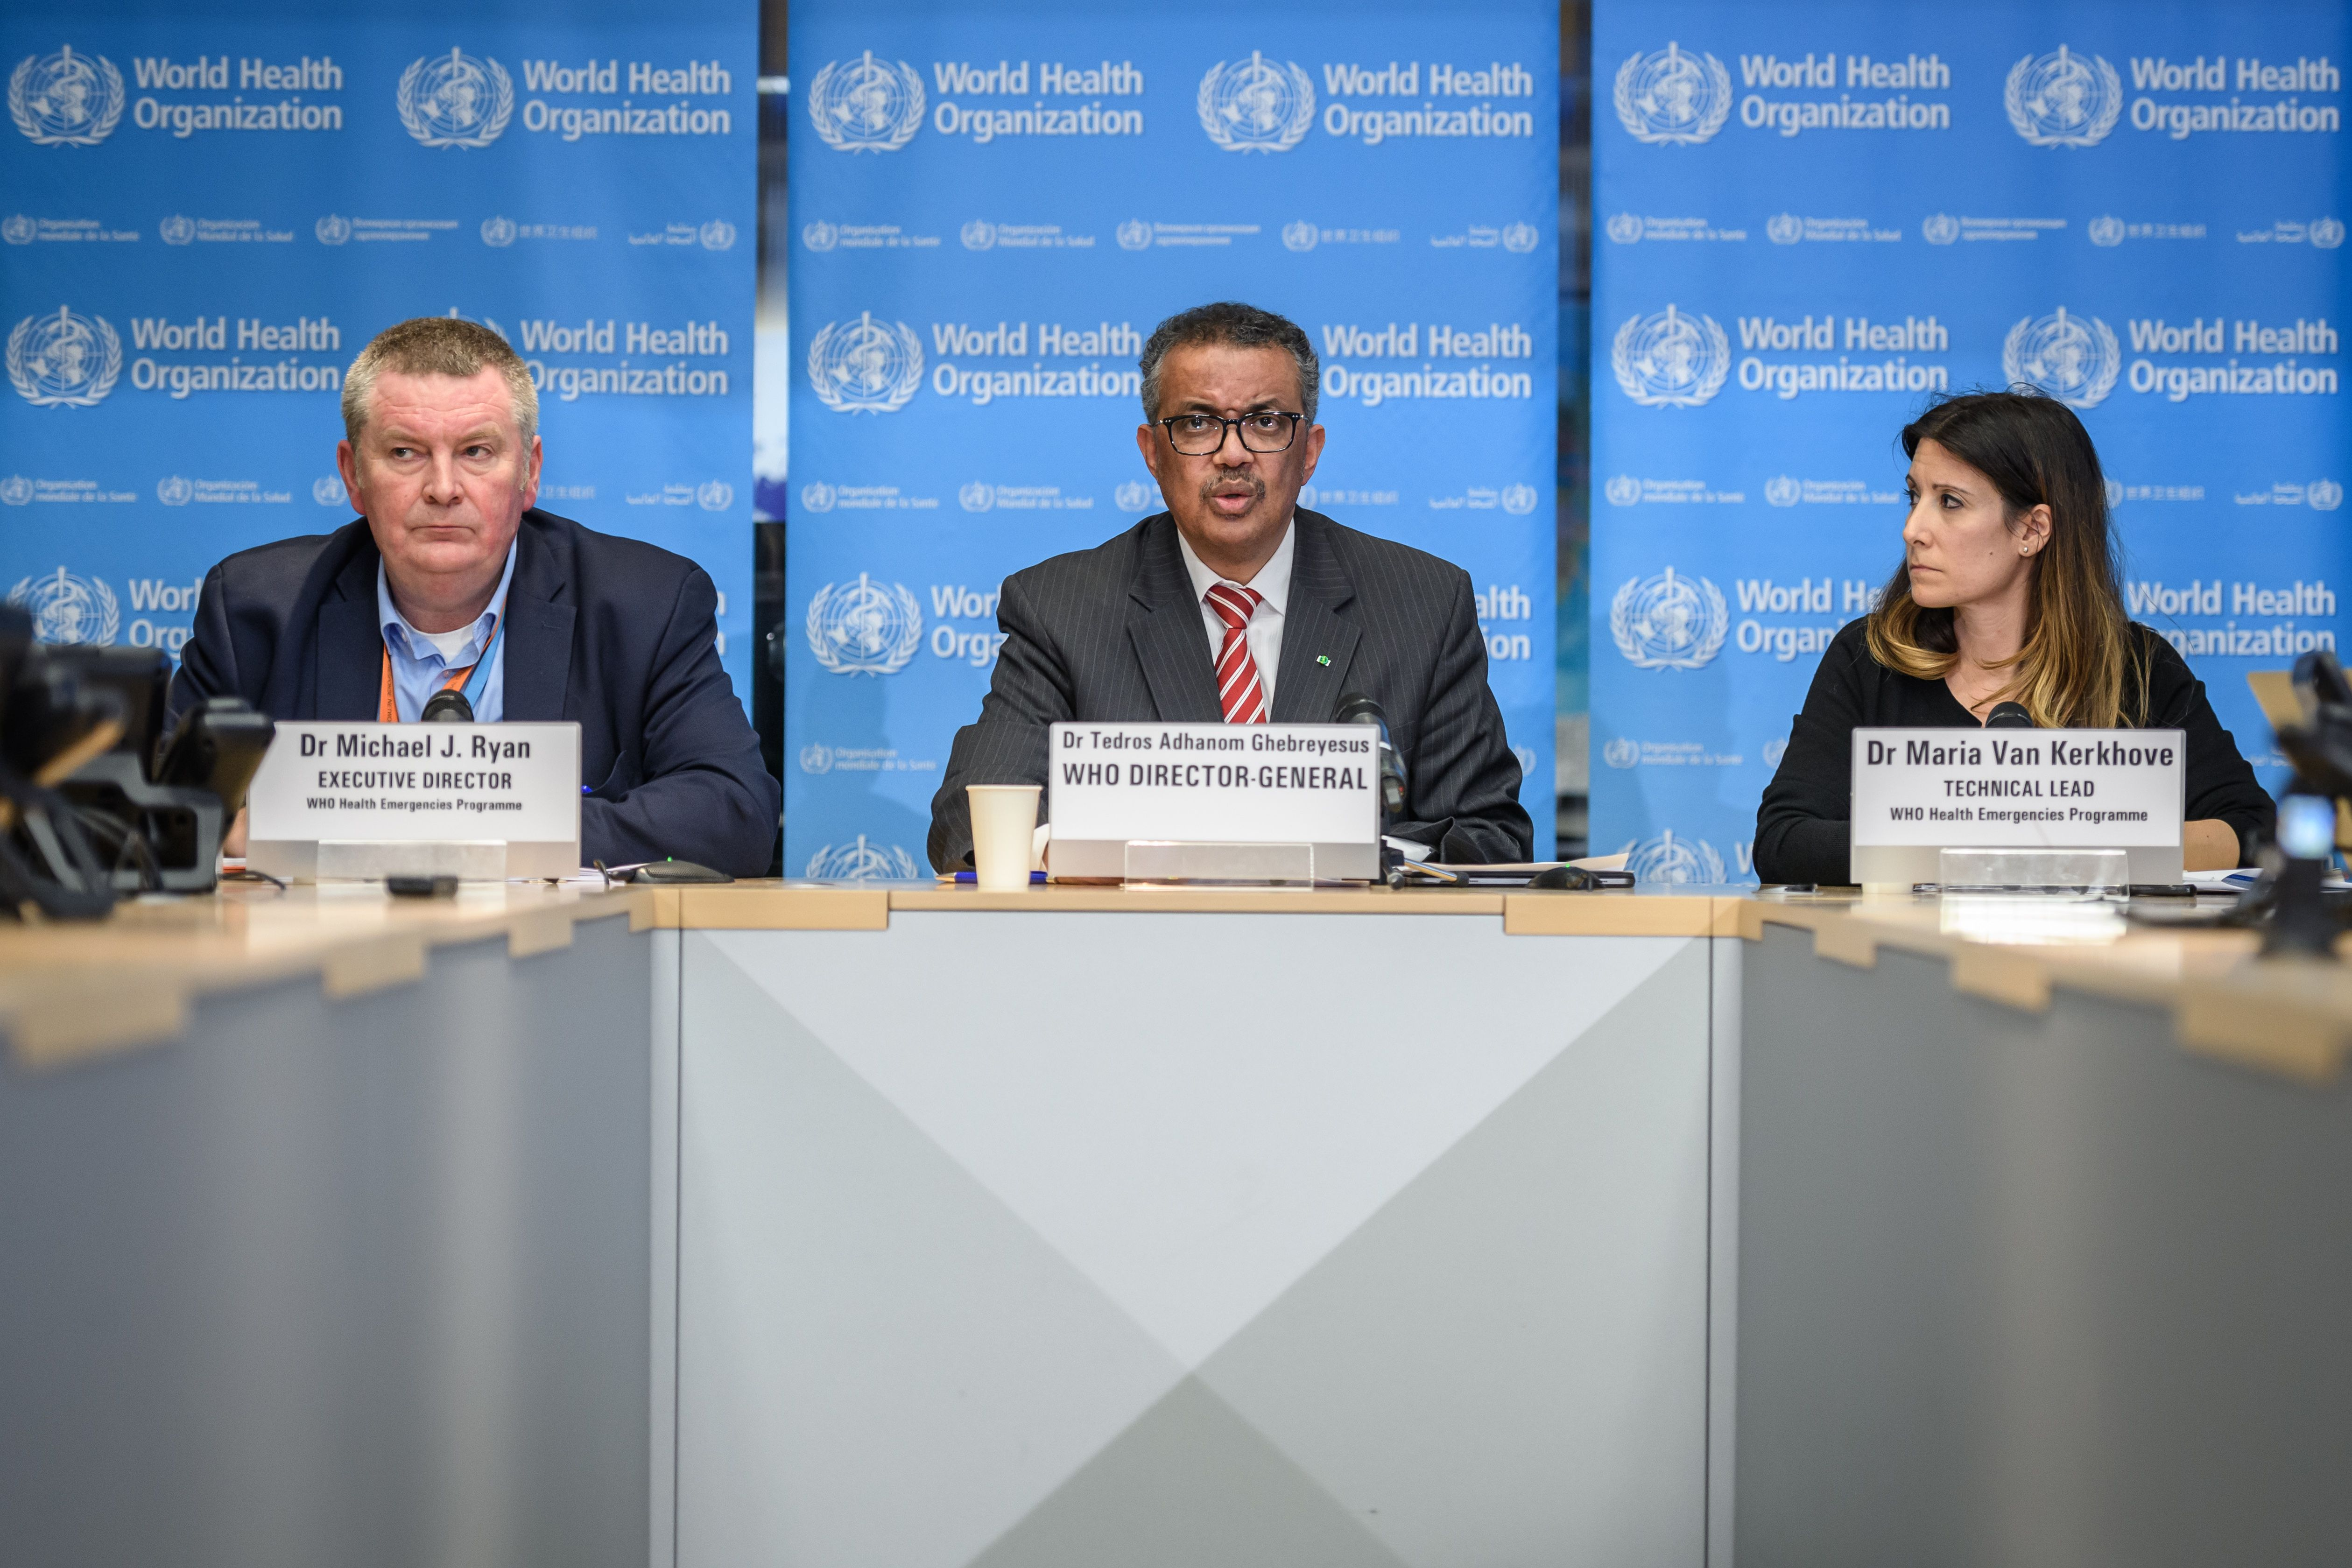 World Health Organization (WHO) Director-General Tedros Adhanom Ghebreyesus, center, speaks at a daily press briefing on coronavirus in Geneva, Switzerland, on Wednesday.